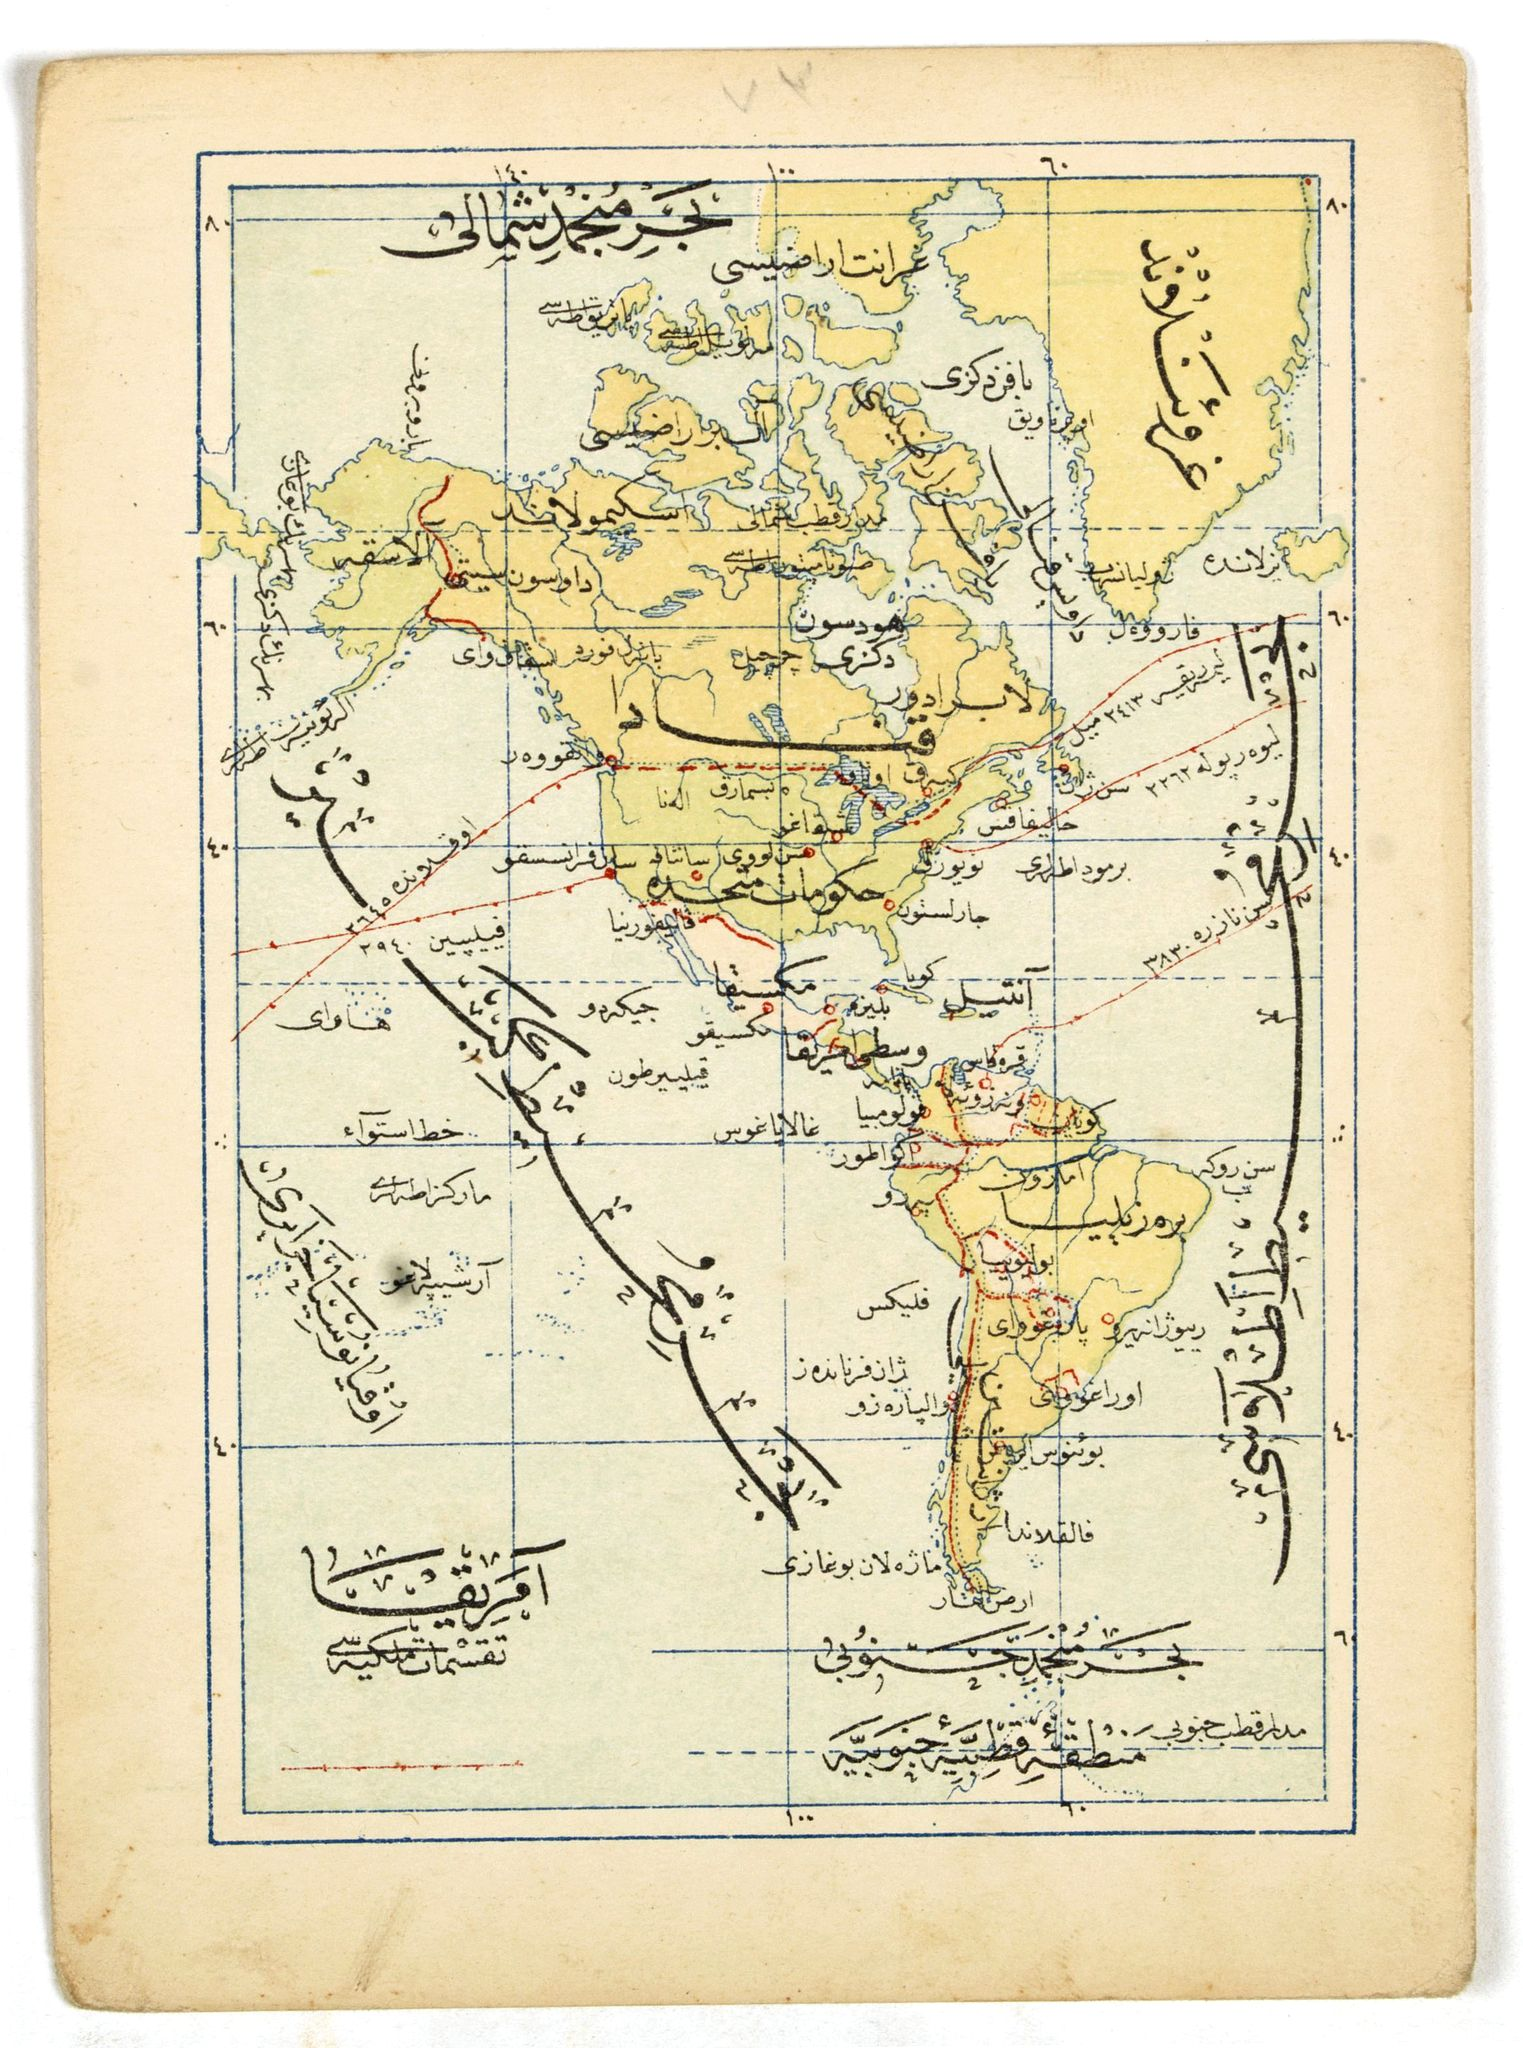 EŞREF, Mehmet -  [ North and South America with telegraph cables, with Ottoman script]